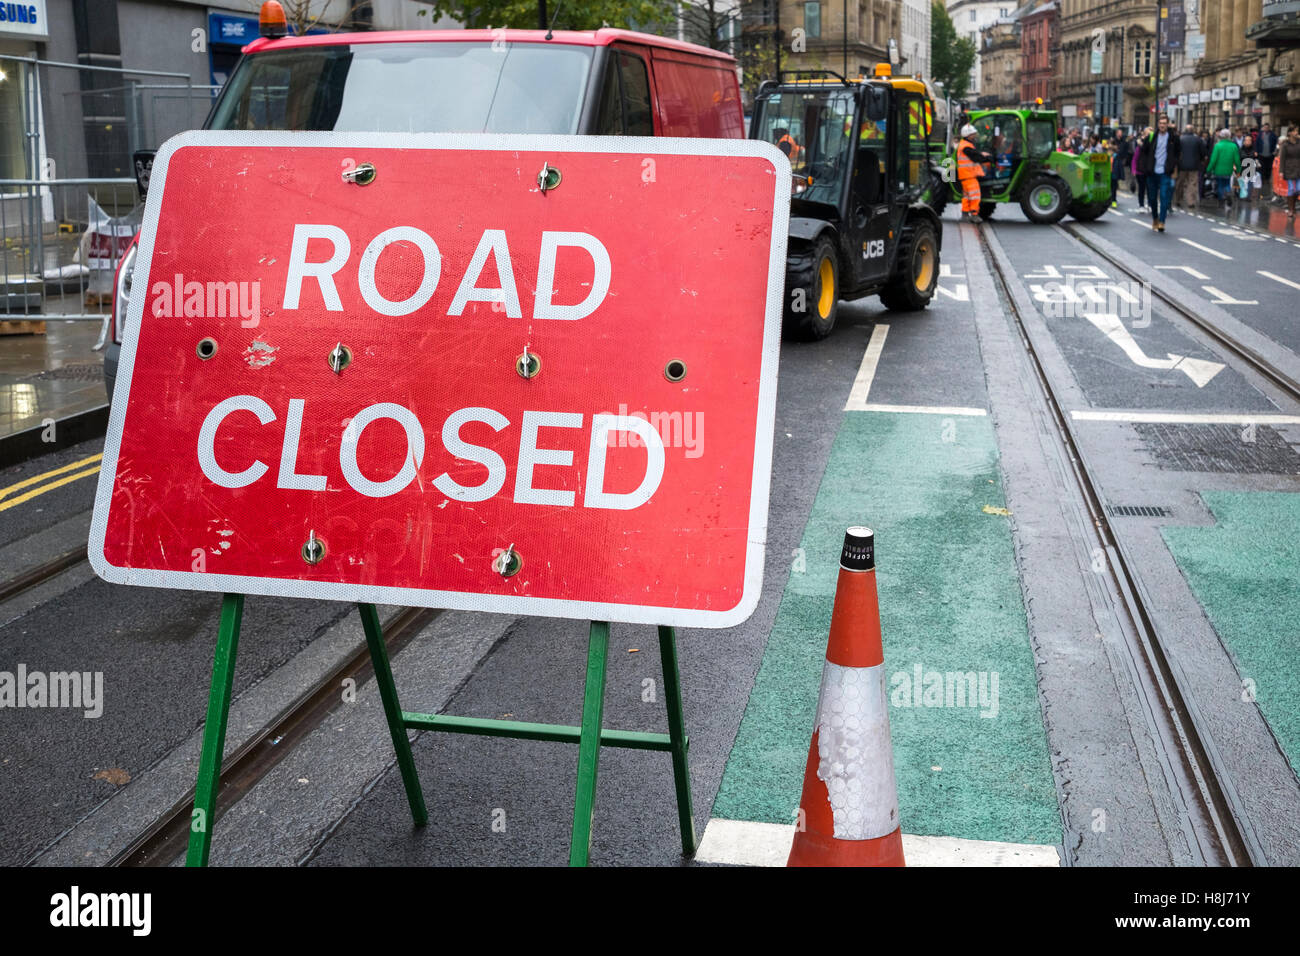 Roadworks signs in Manchester city centre, UK - Stock Image